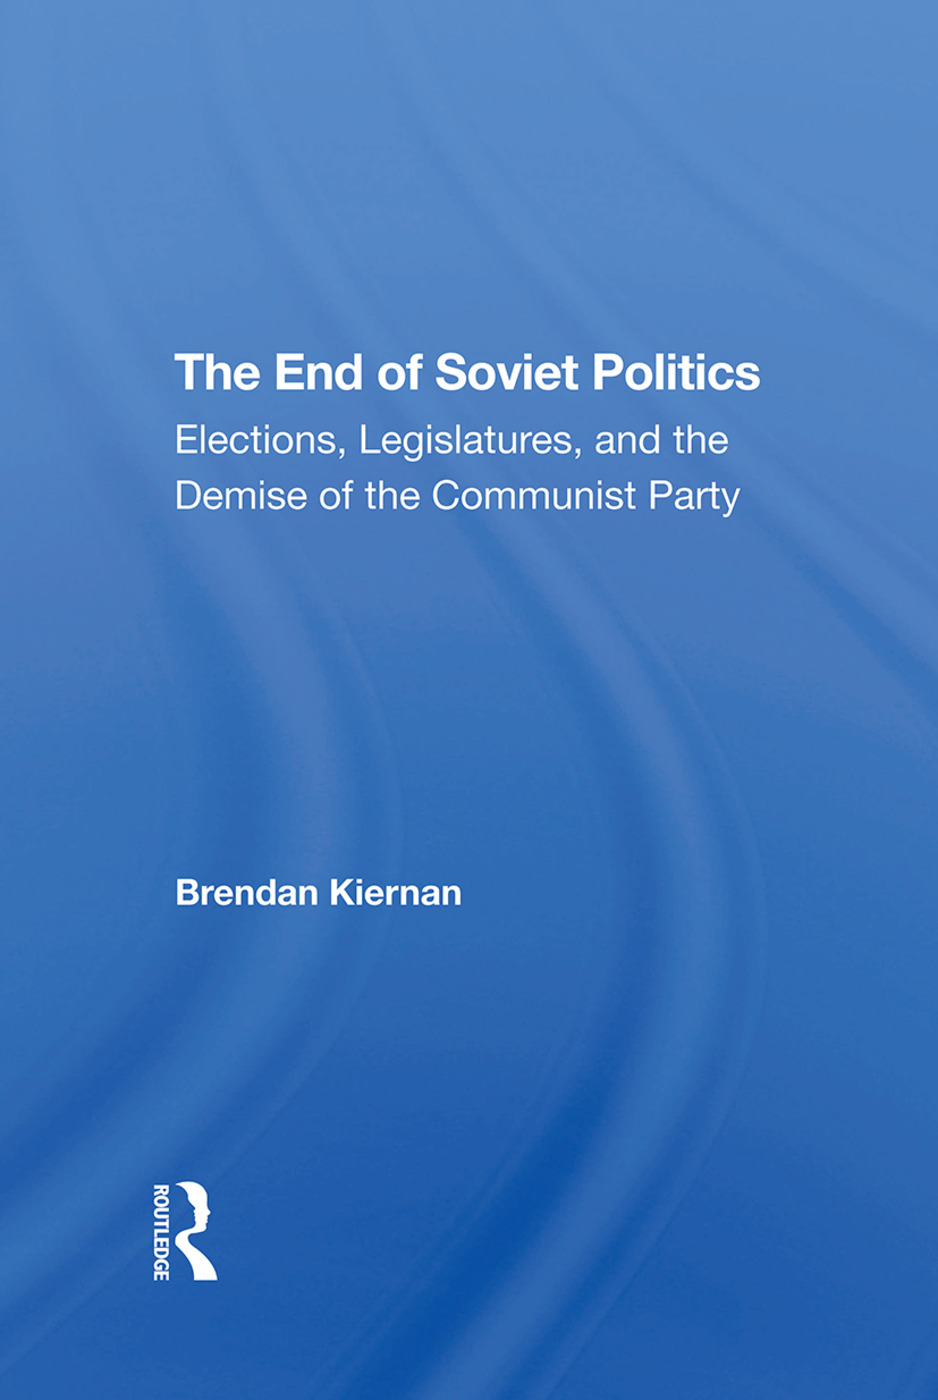 The End Of Soviet Politics: Elections, Legislatures, And The Demise Of The Communist Party book cover